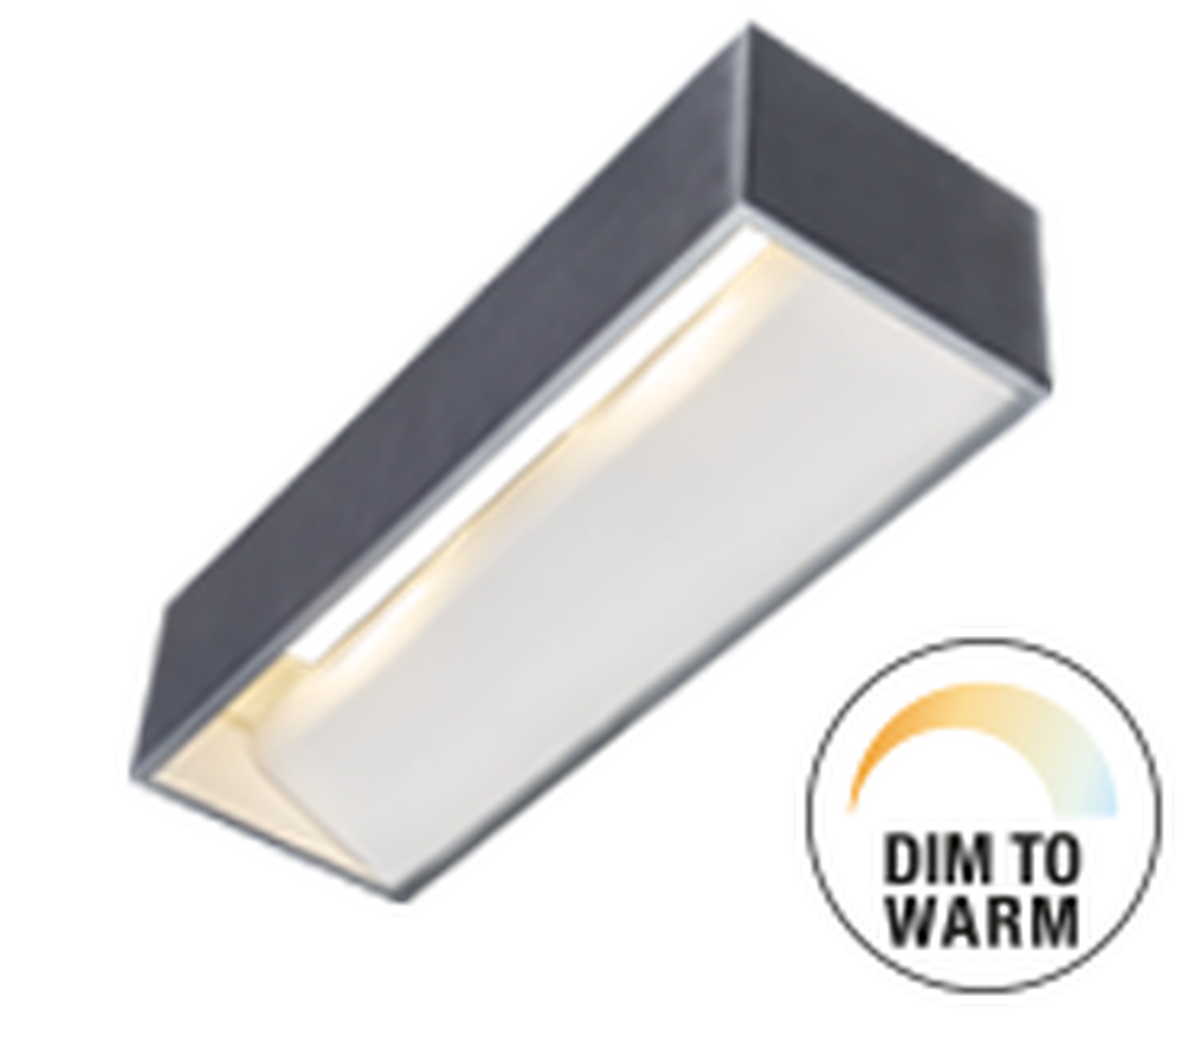 Dim-to-warm